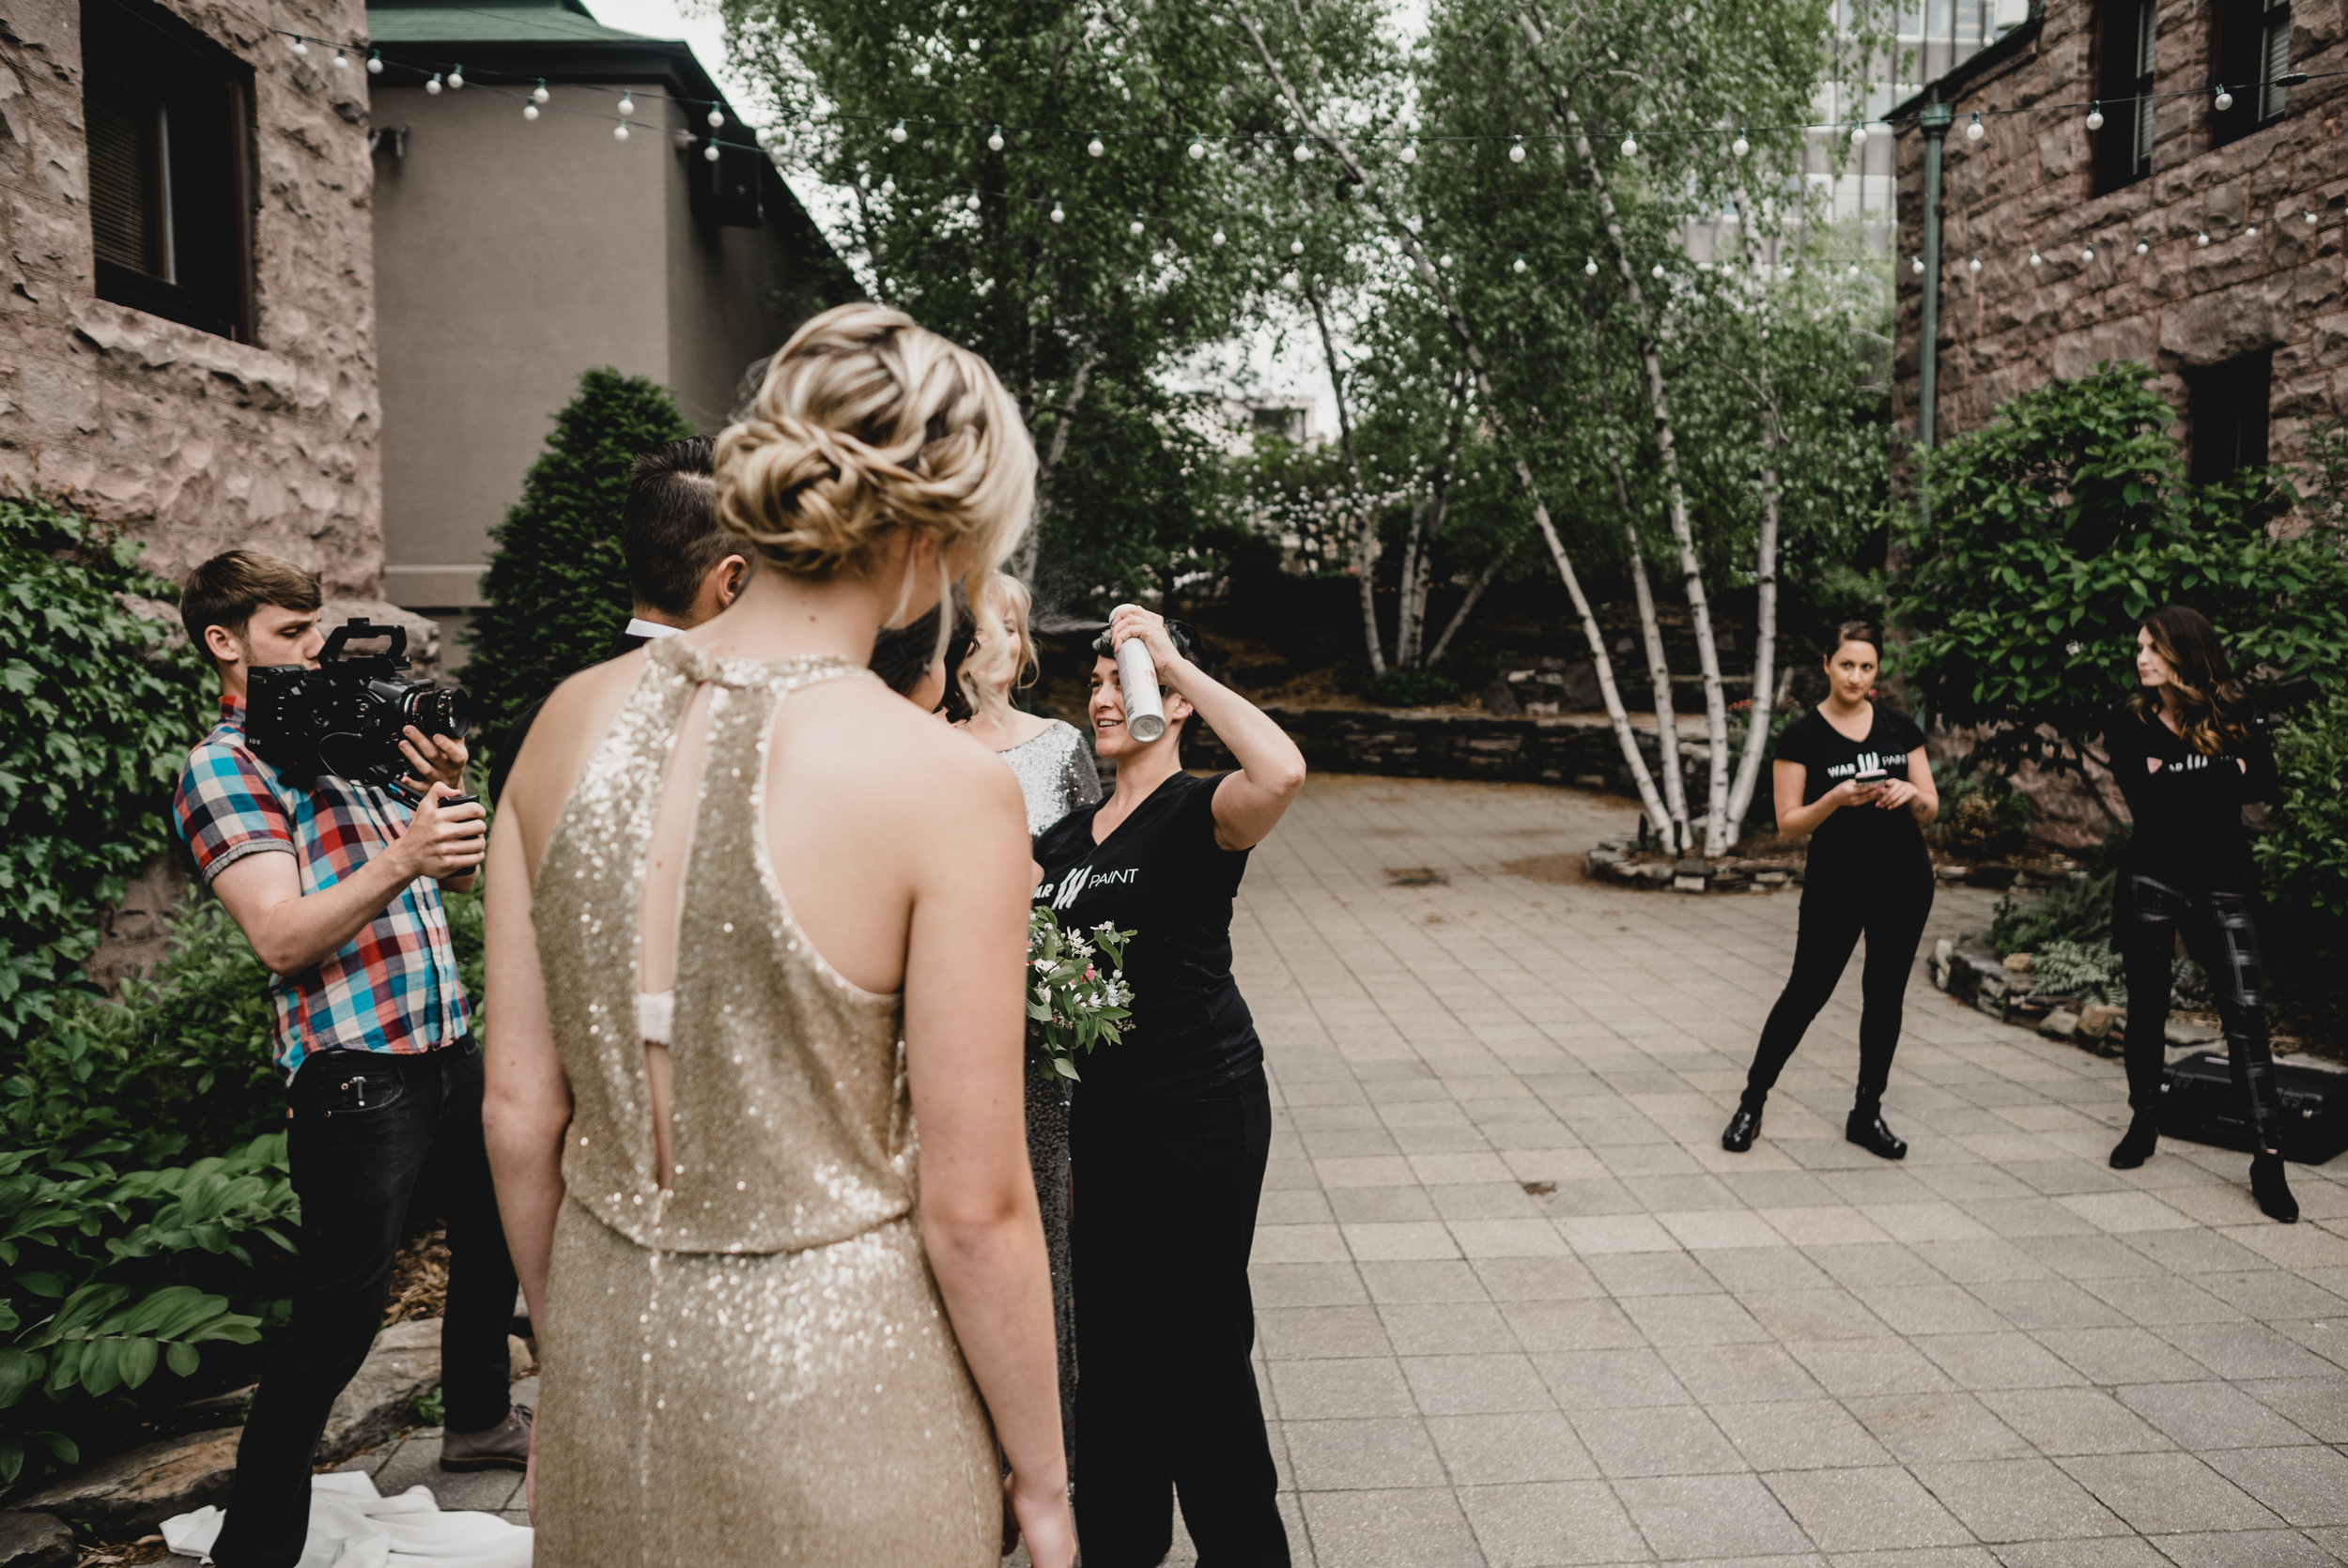 The WarPaint team gives one last final touch to the wedding party.